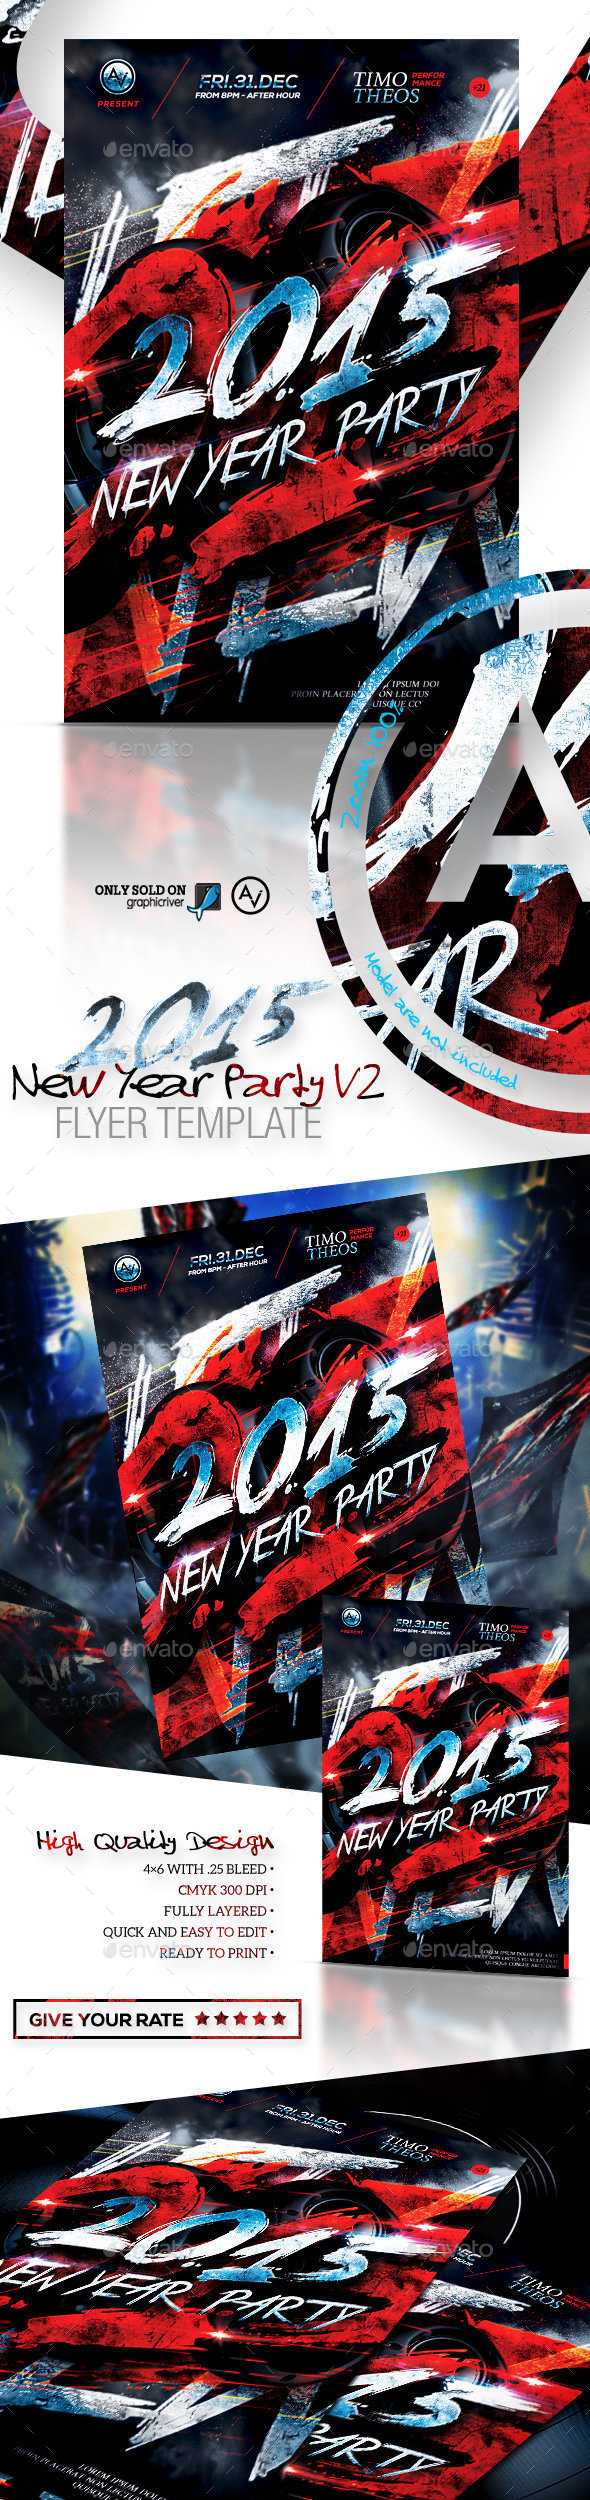 2015 New Year Party Flyer Template V2 - Clubs & Parties Events